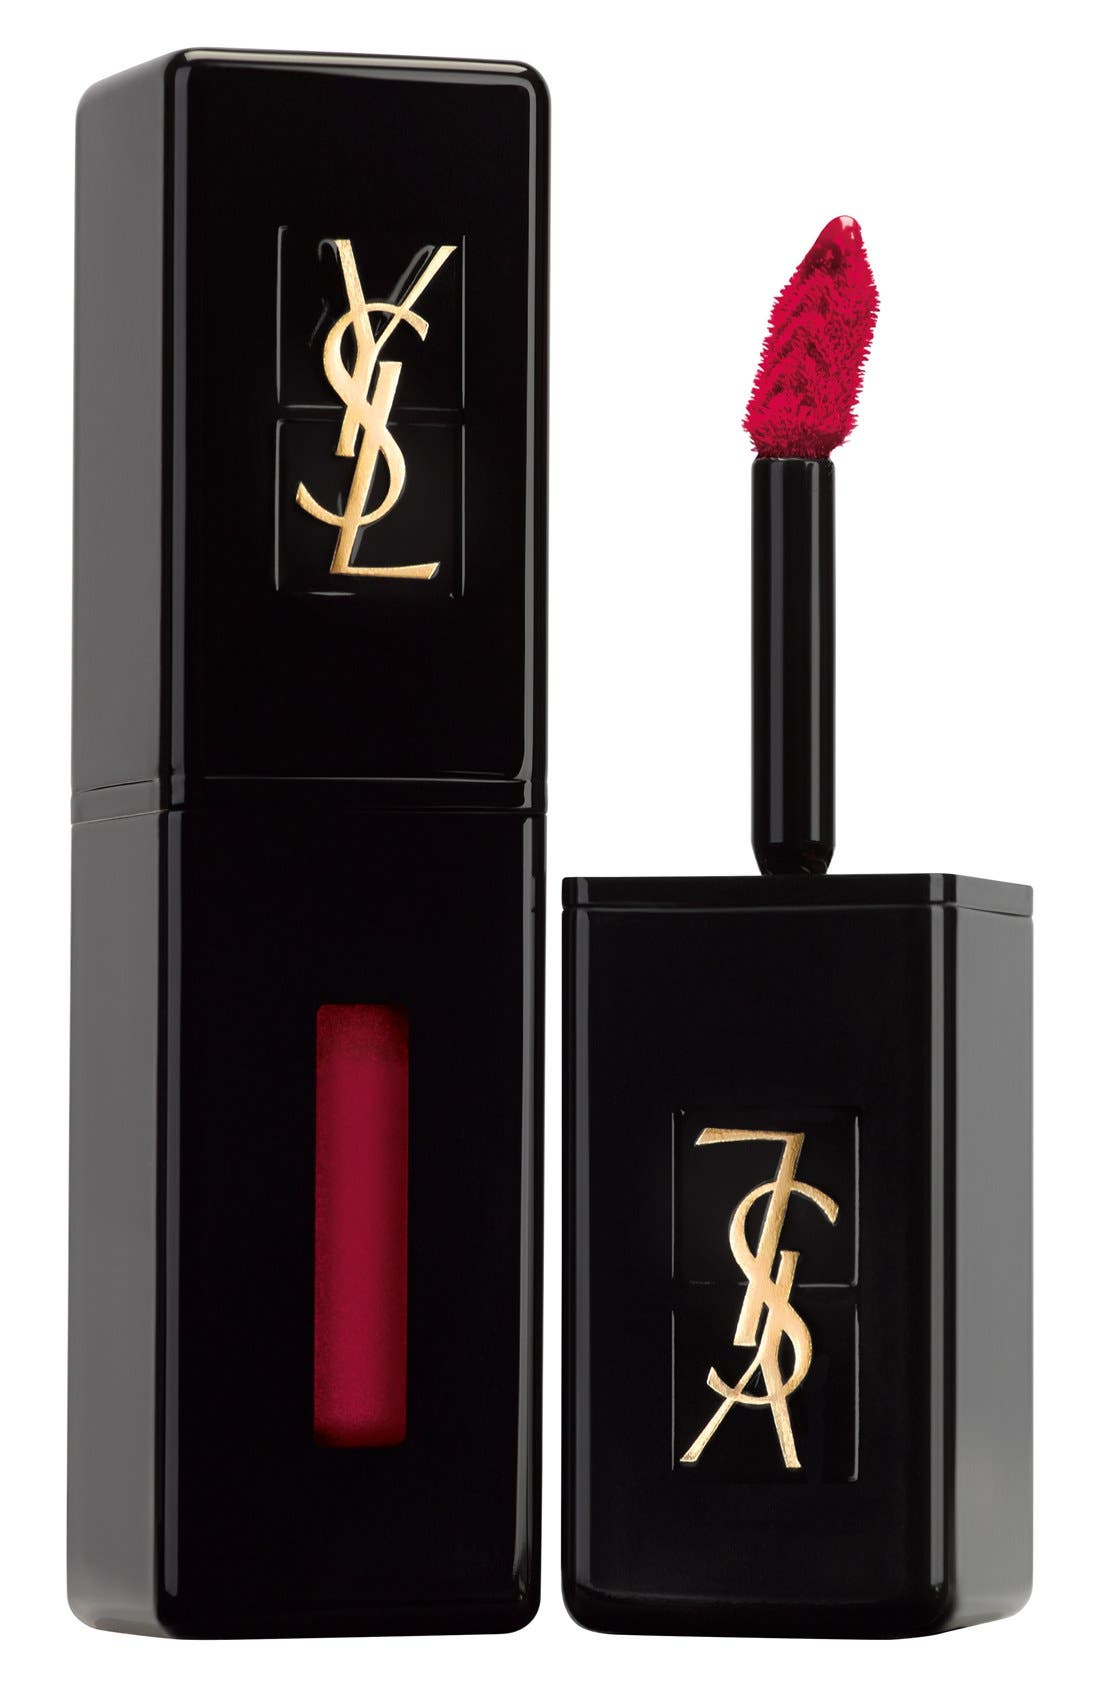 Yves Saint Laurent 'Vernis a Levres' Vinyl Cream Lip Stain